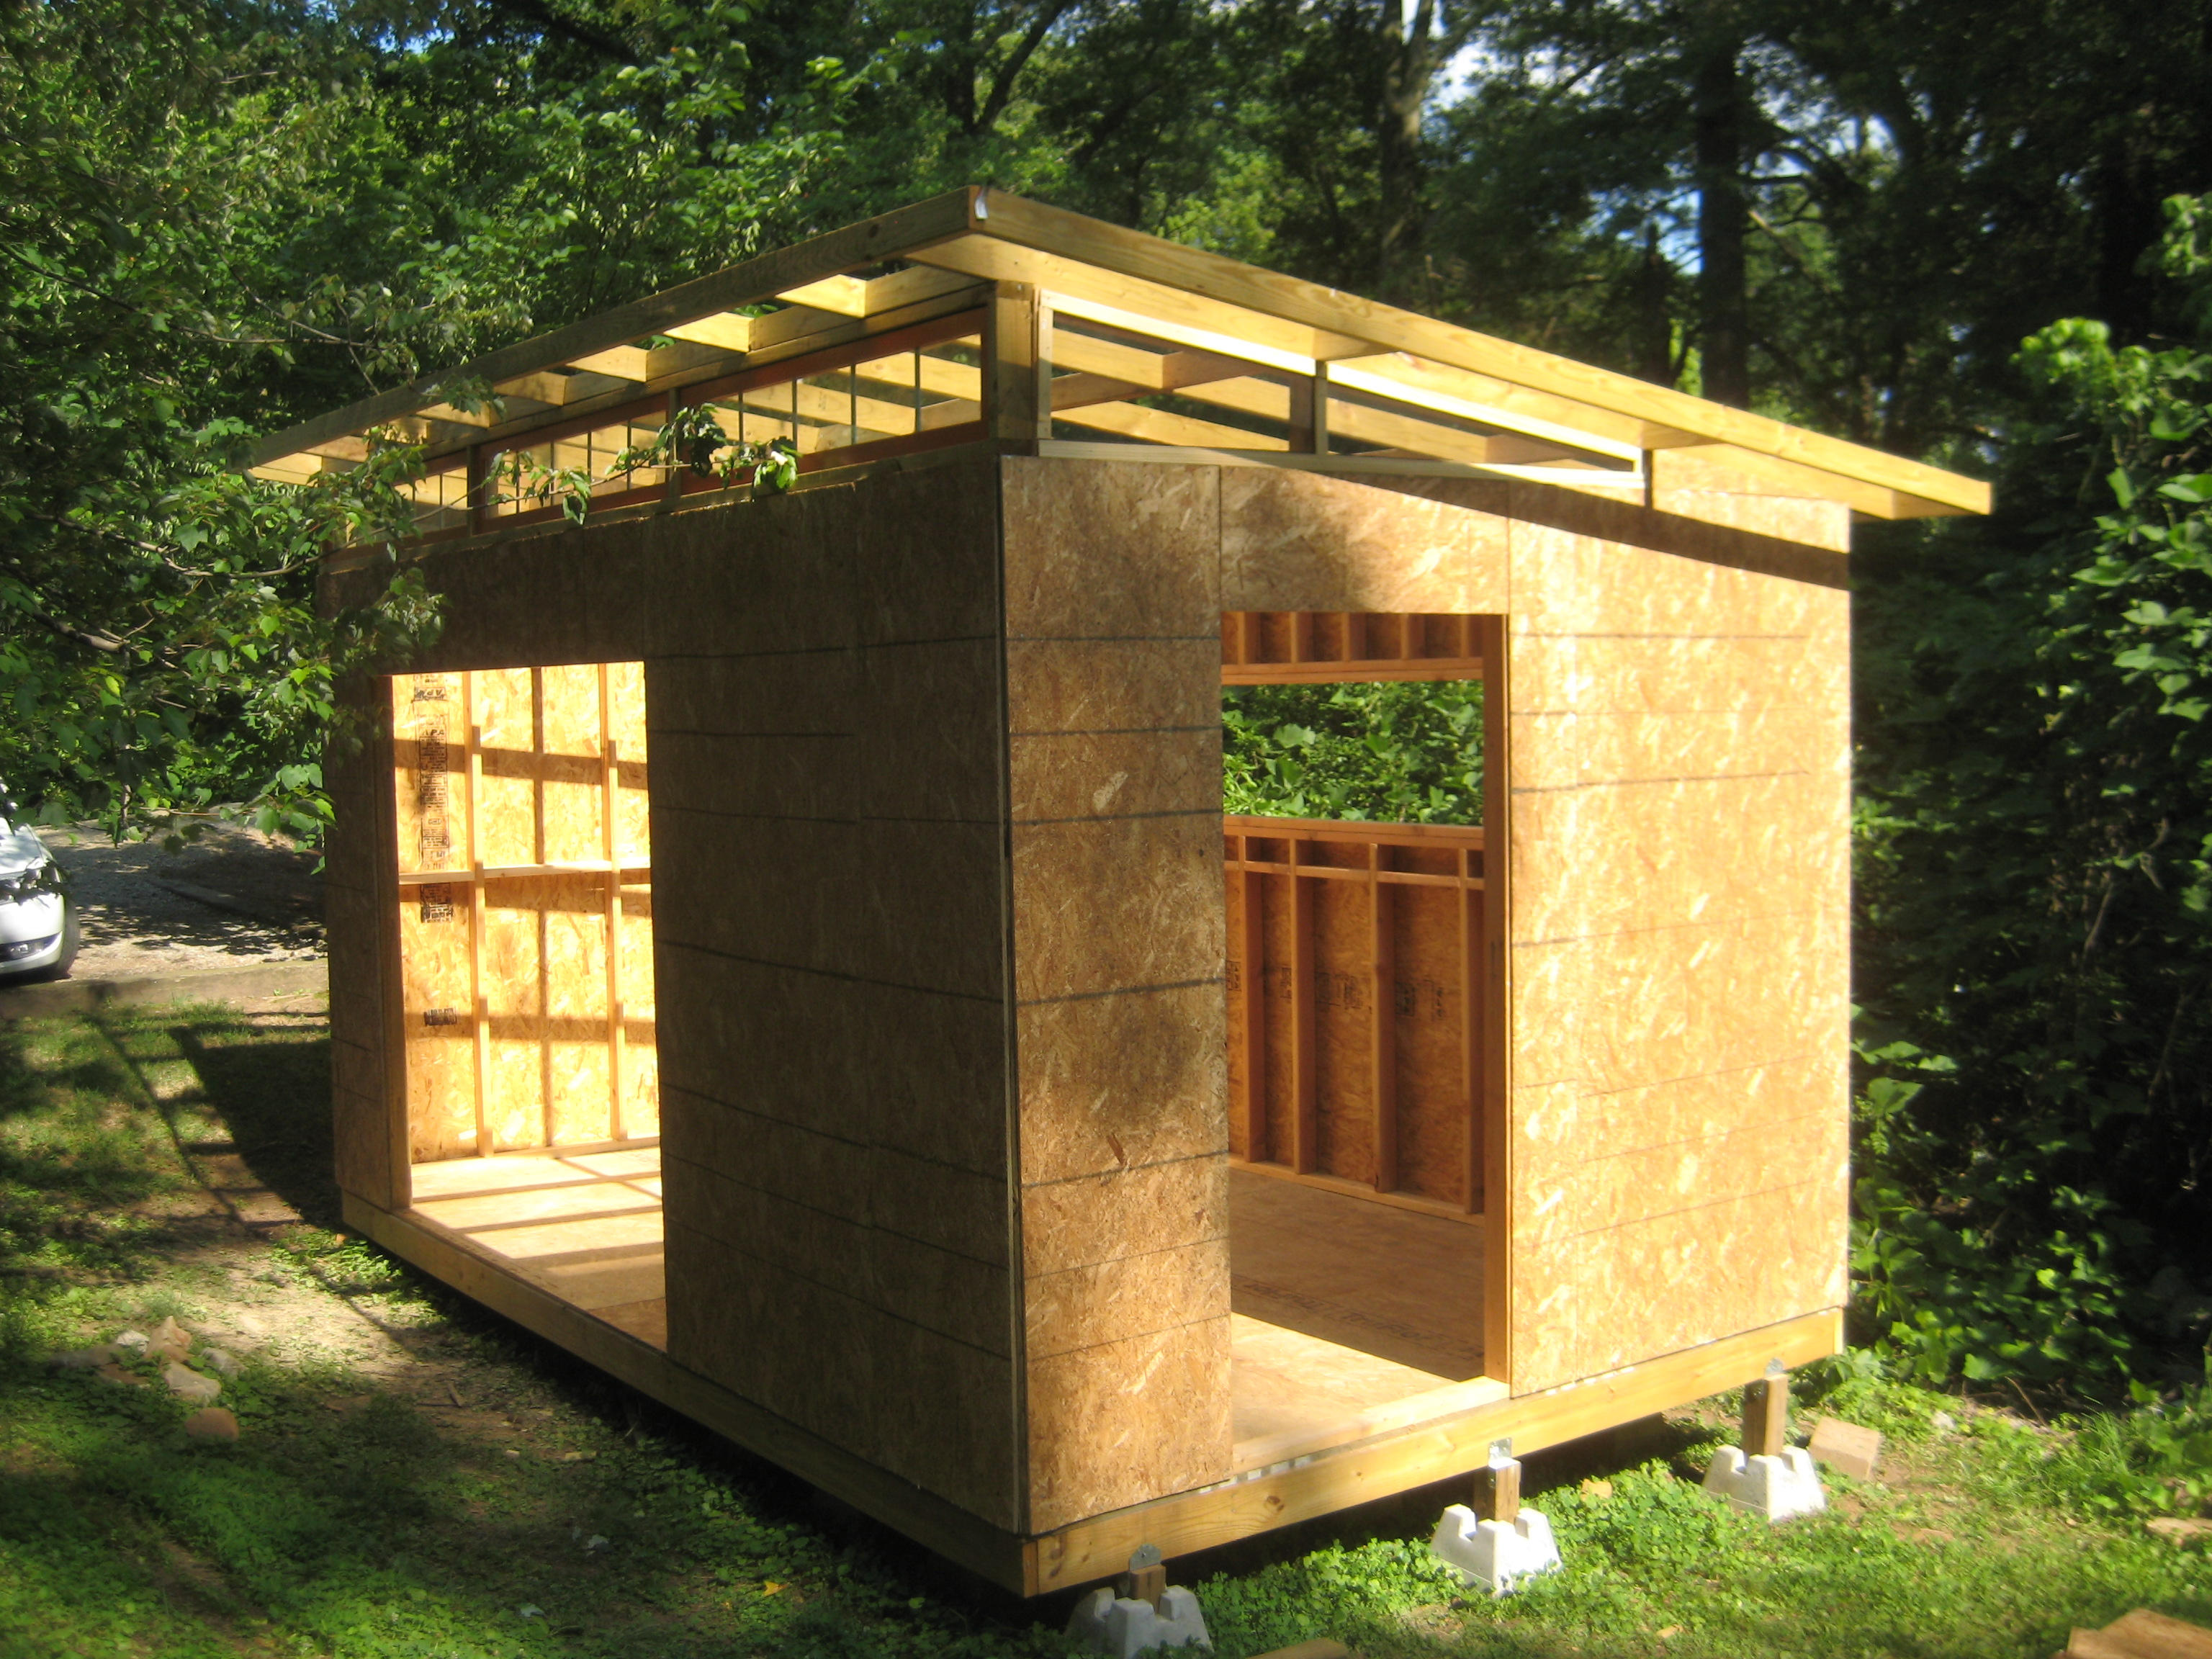 Design Schuur Diy Modern Shed Project Diyatlantamodern